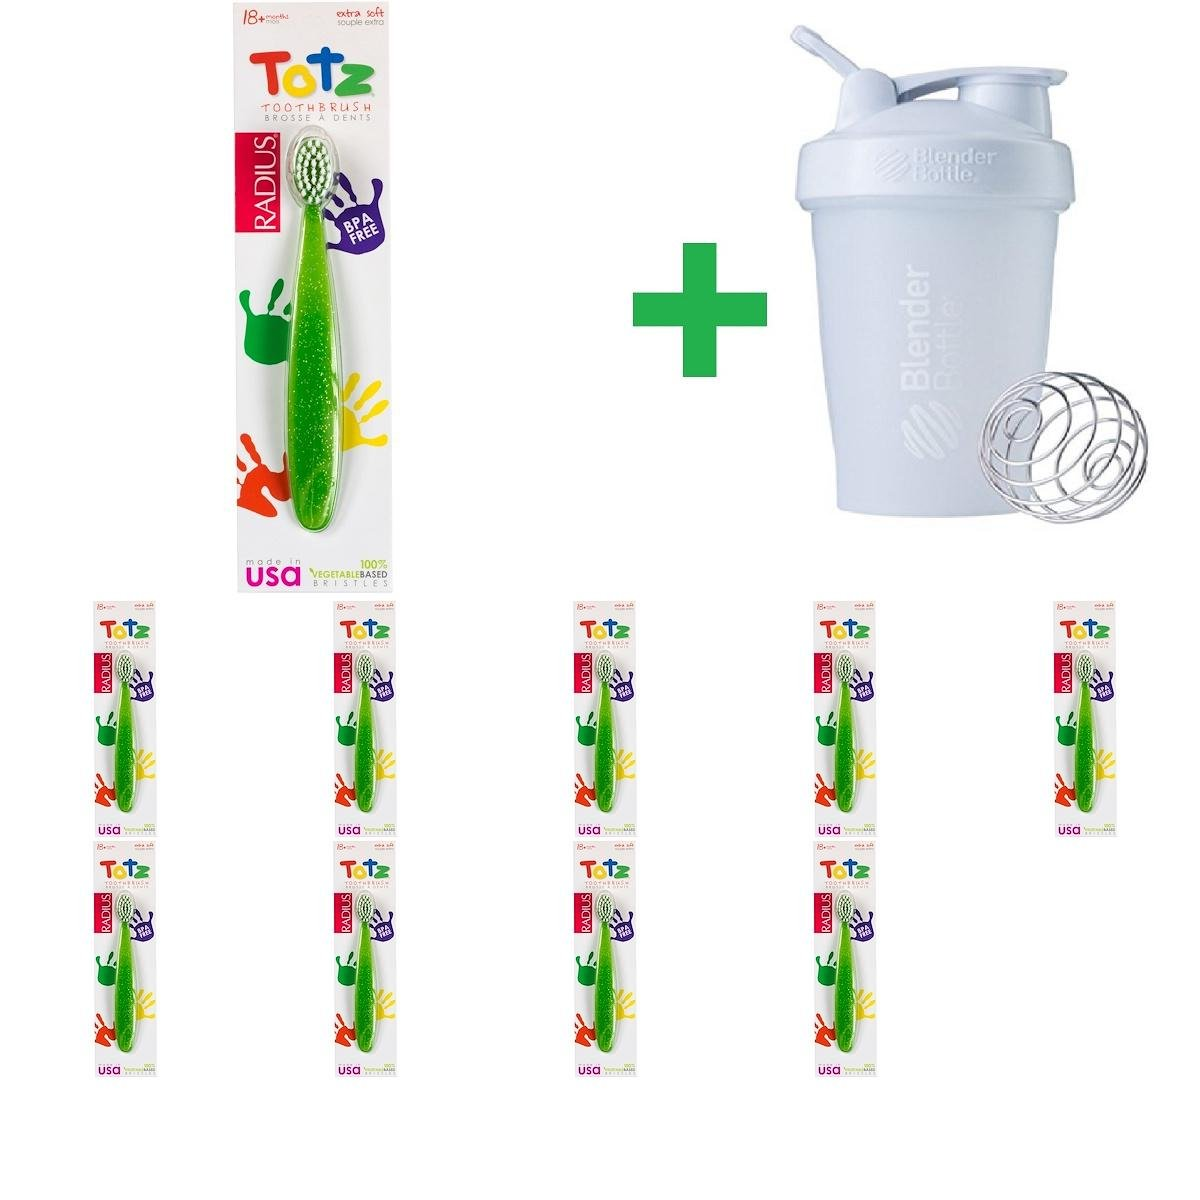 RADIUS, Totz Toothbrush, 18 + Months, Extra Soft, Green Sparkle(10 Packs)+ Assorted Sundesa, BlenderBottle, Classic With Loop, 20 oz